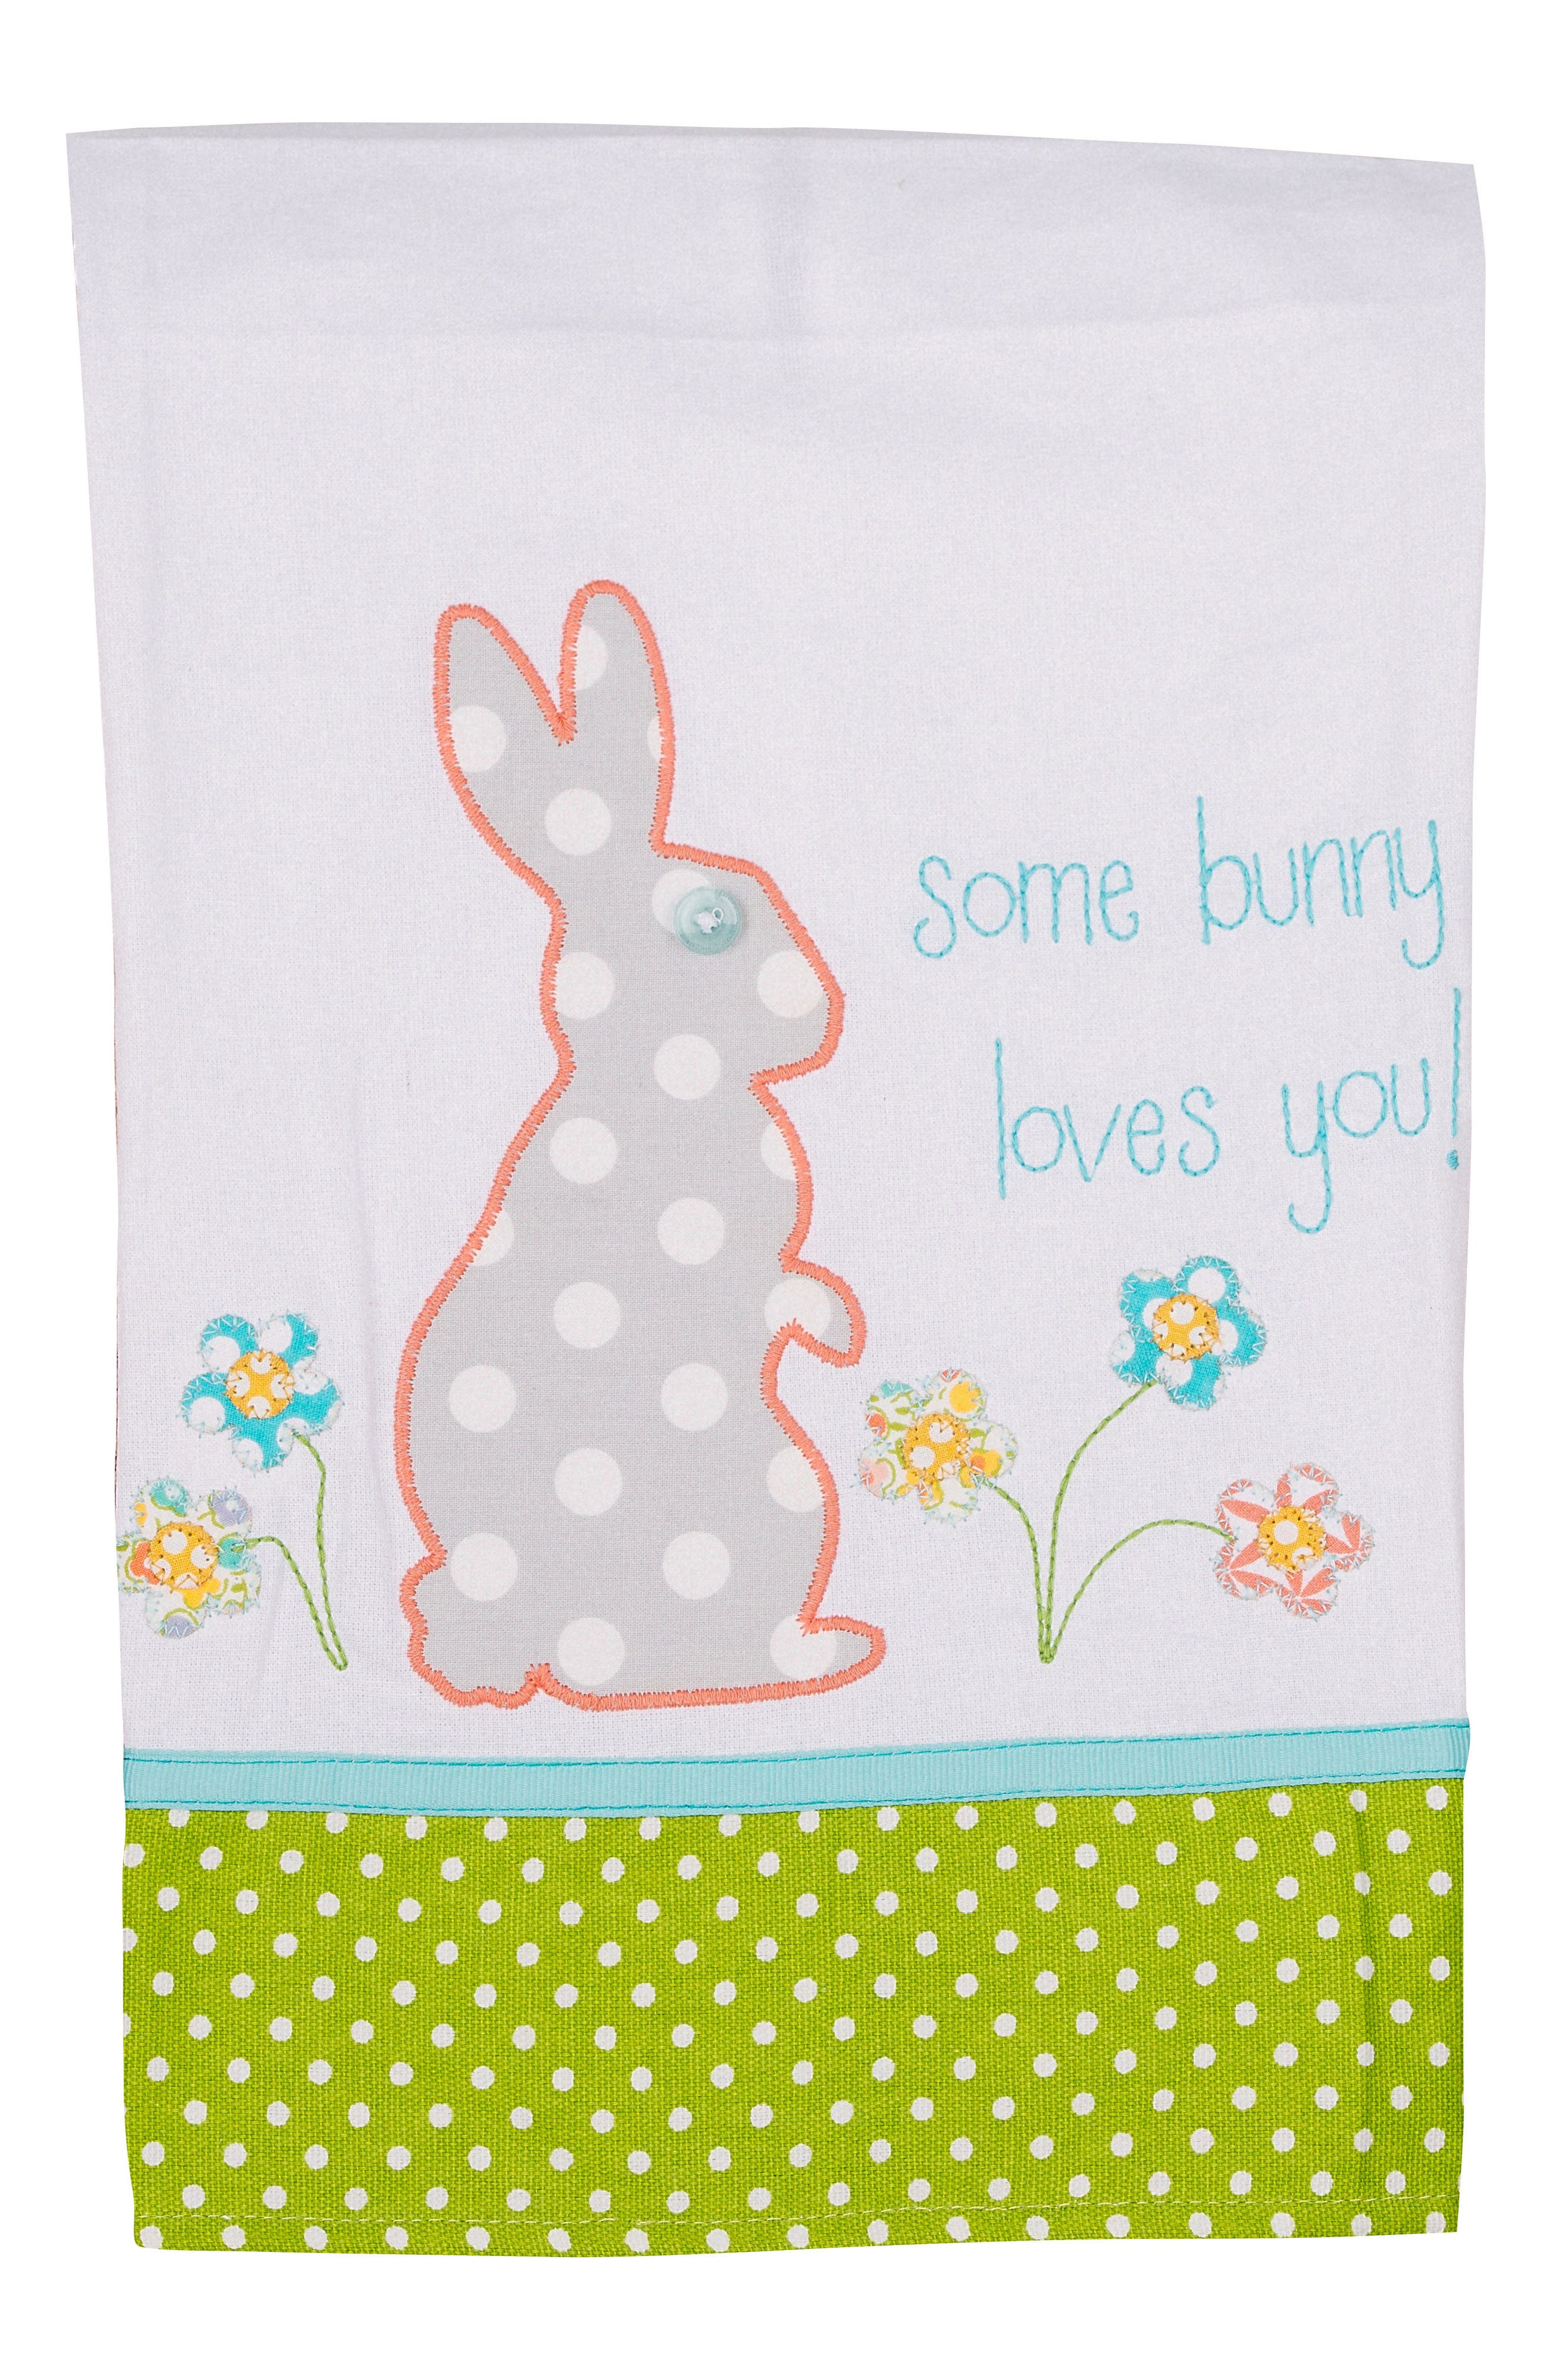 Some Bunny Love You Tea Towel,                         Main,                         color, Green/ White